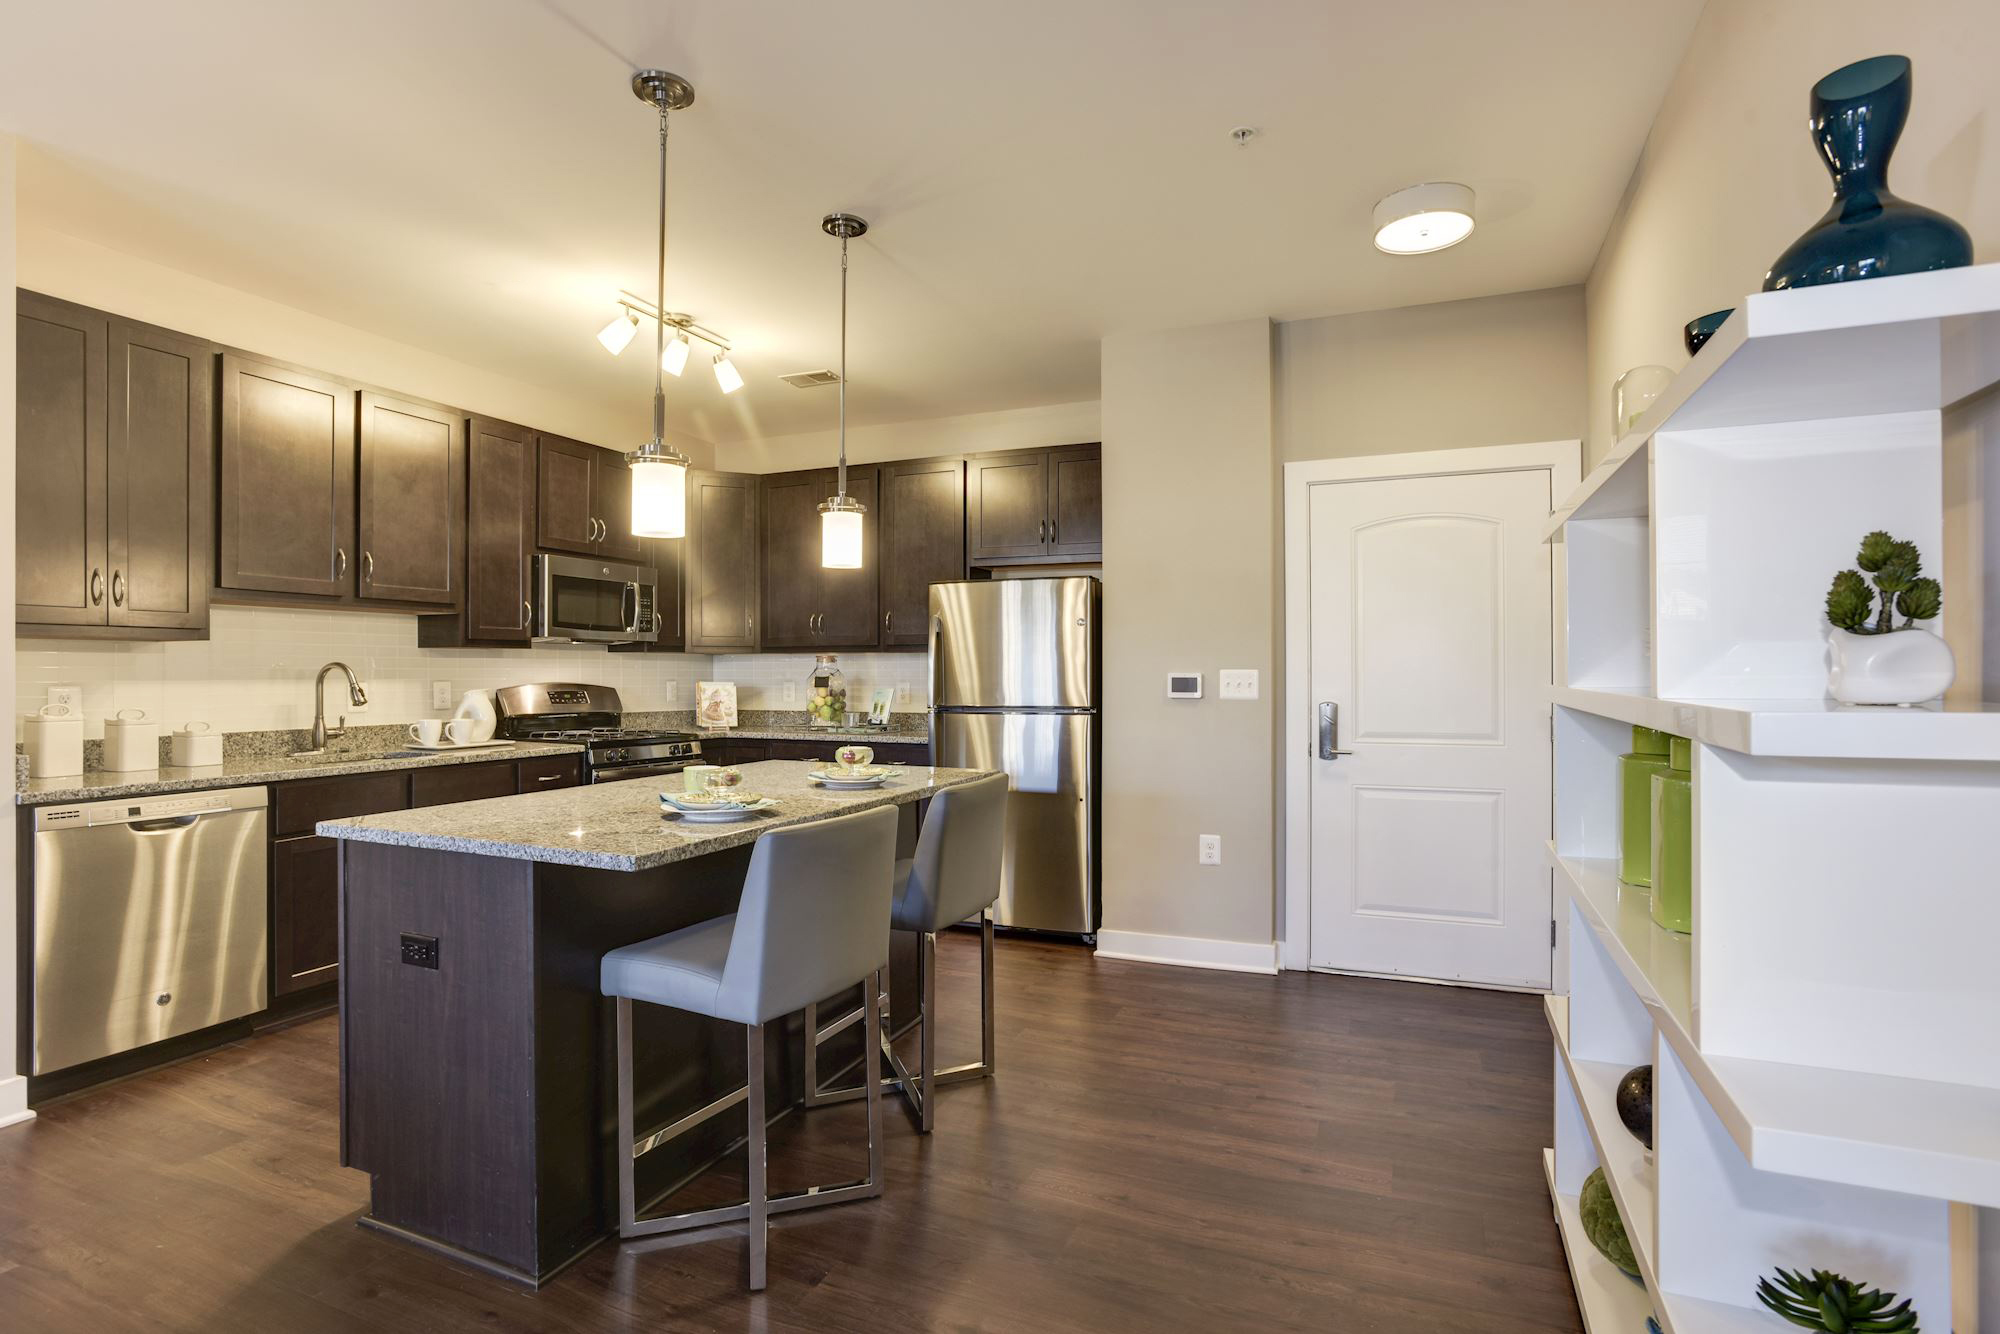 Avanti Luxury Apartments in Bel Air, MD - Kitchen & Entry